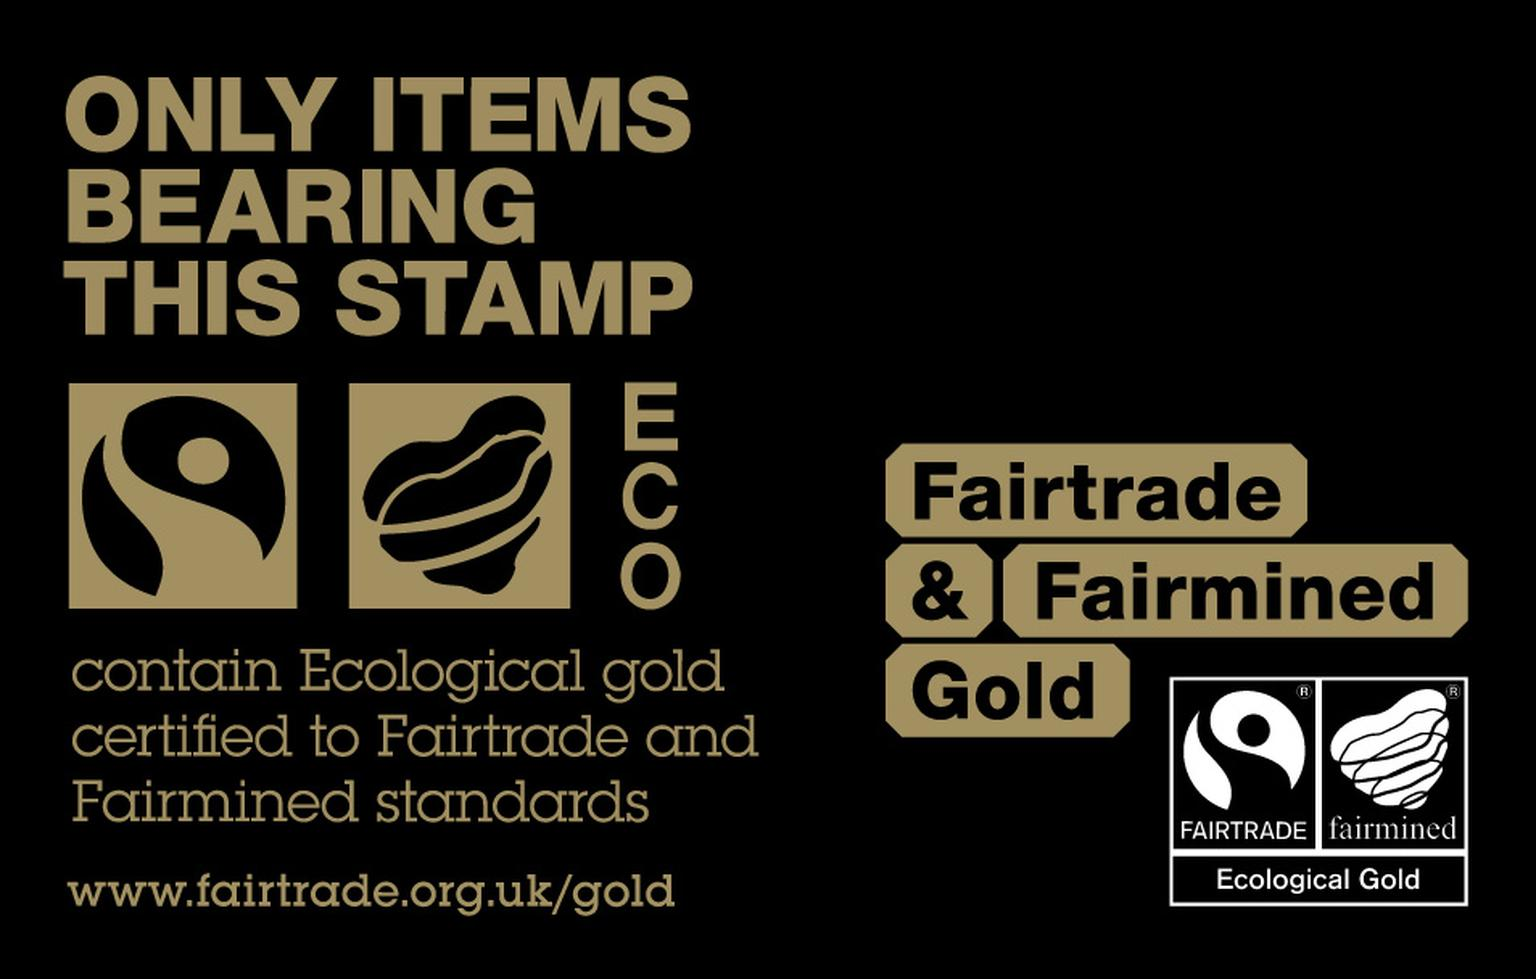 How to distinguish Fairtrade/Fairmined gold